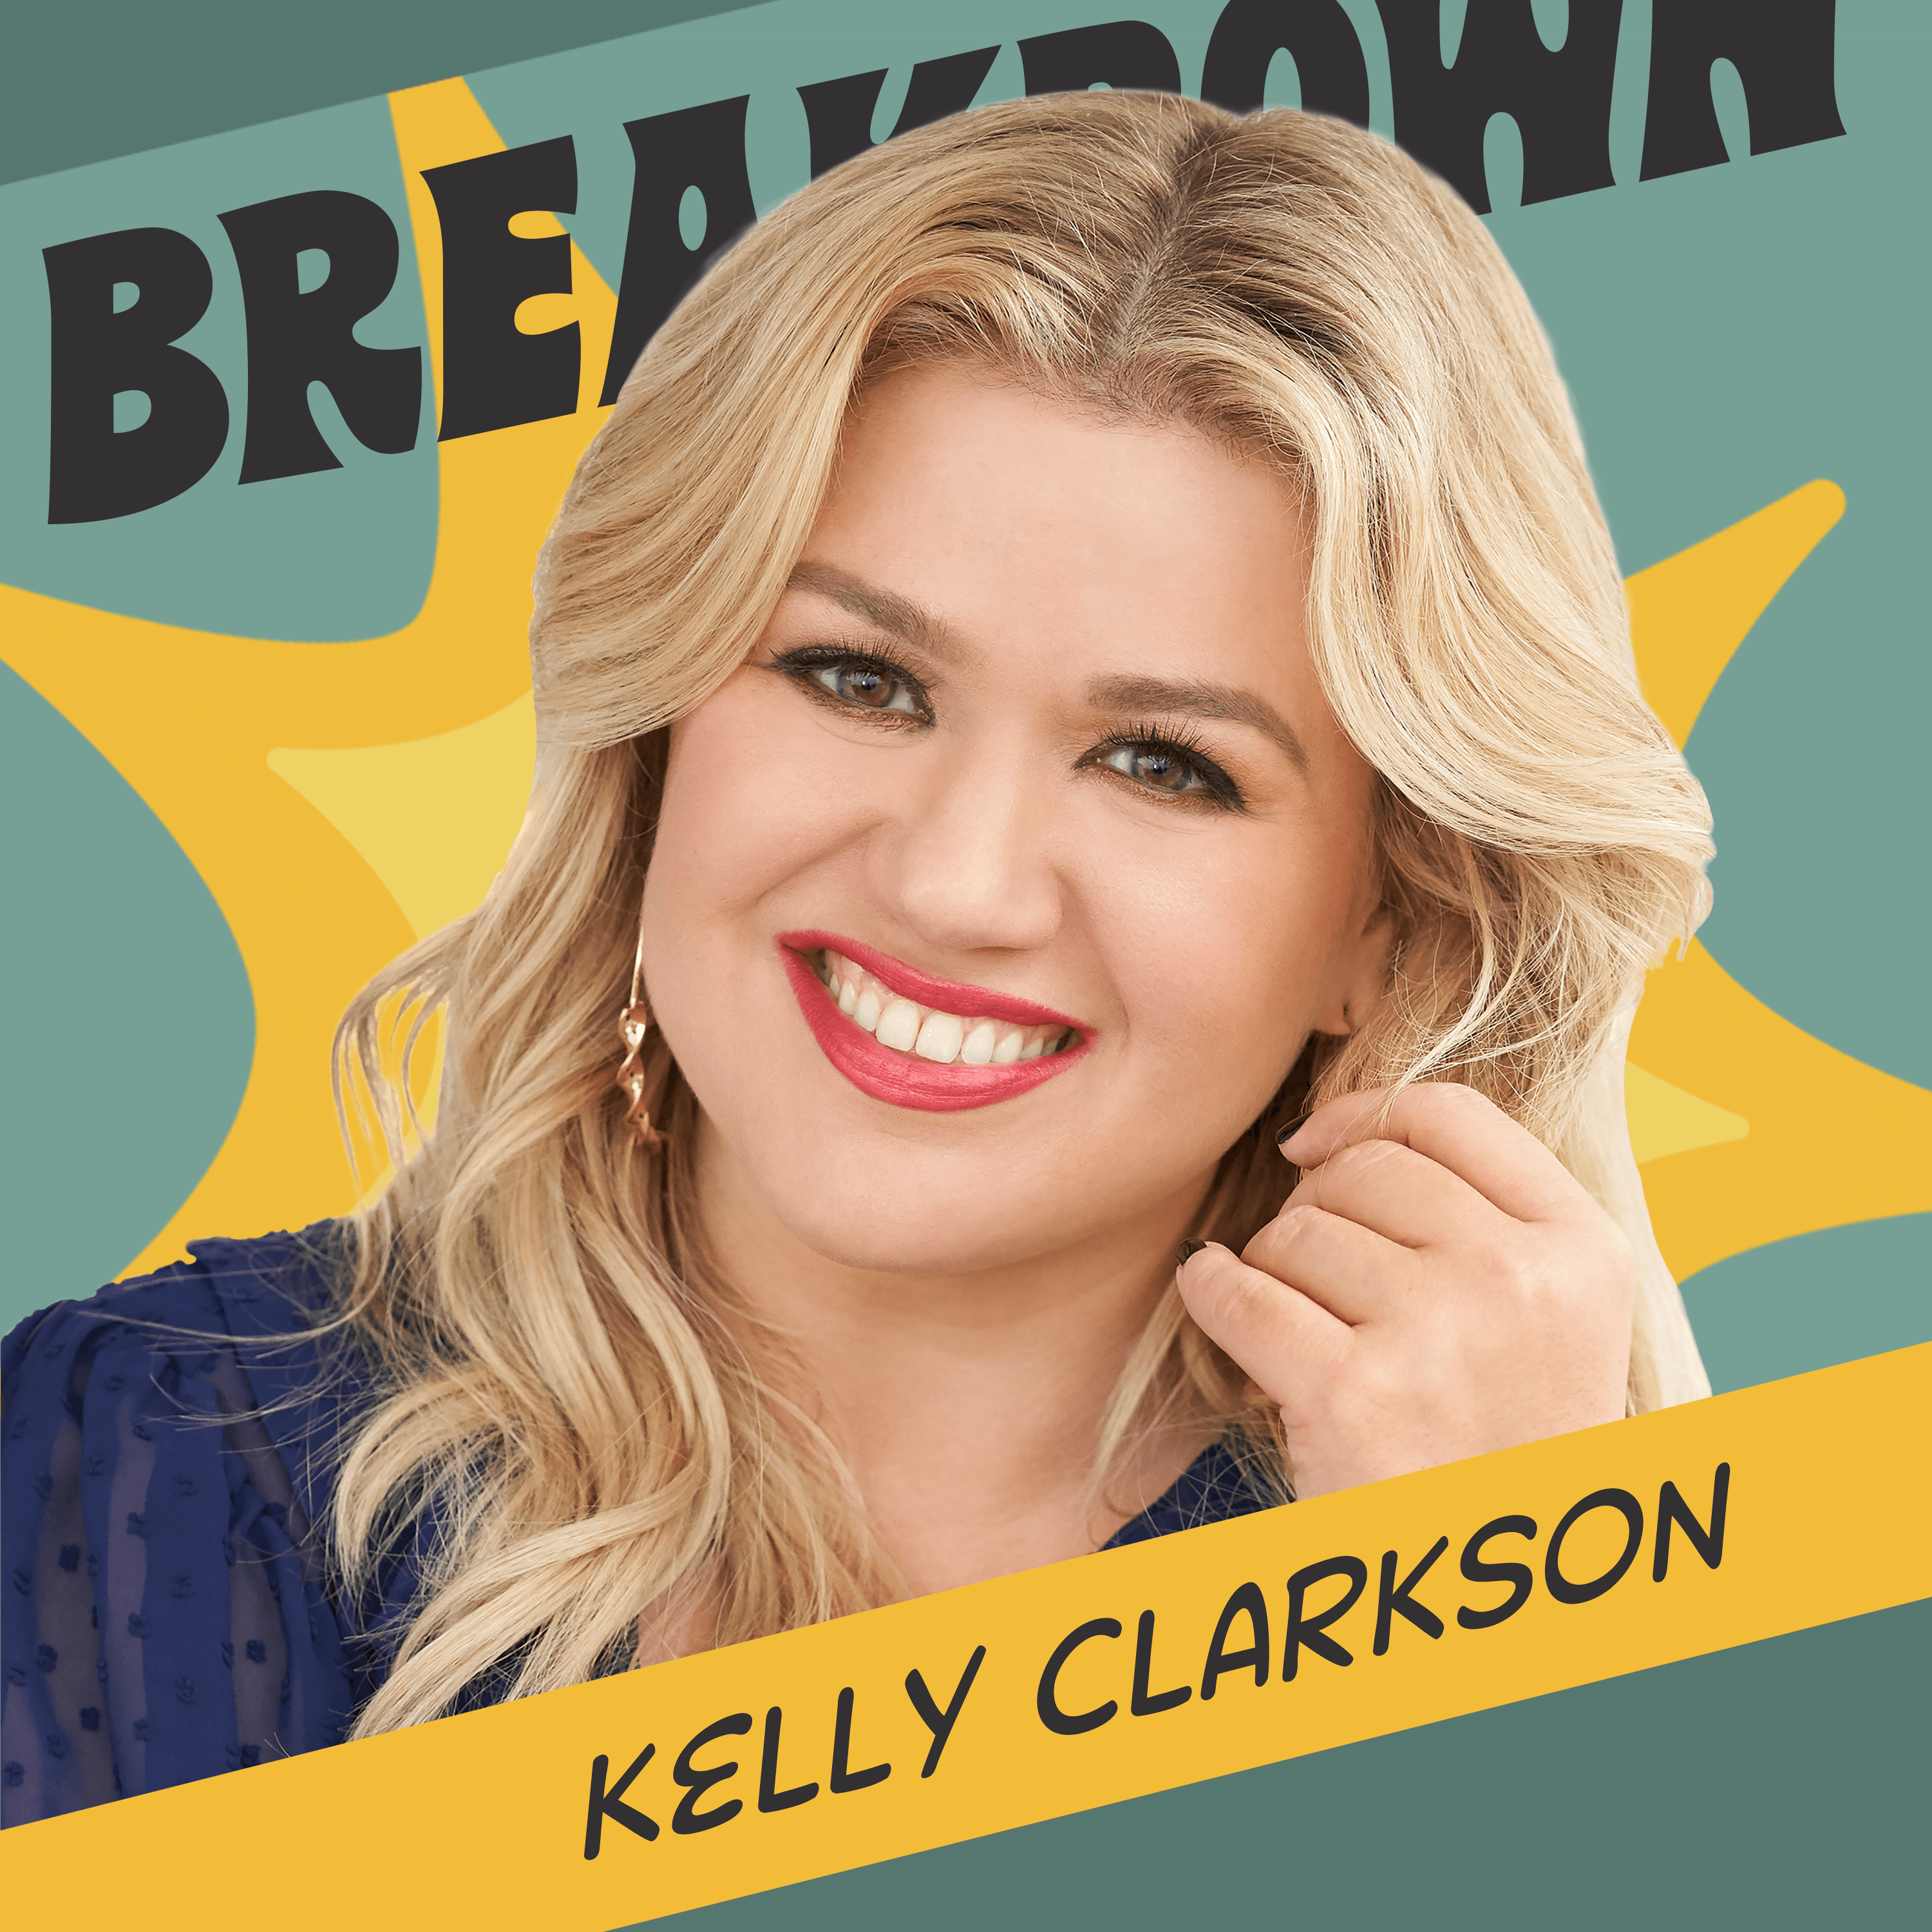 Kelly Clarkson: Small-Town Starts, F-You Attitudes, & Combatting Industry Standards